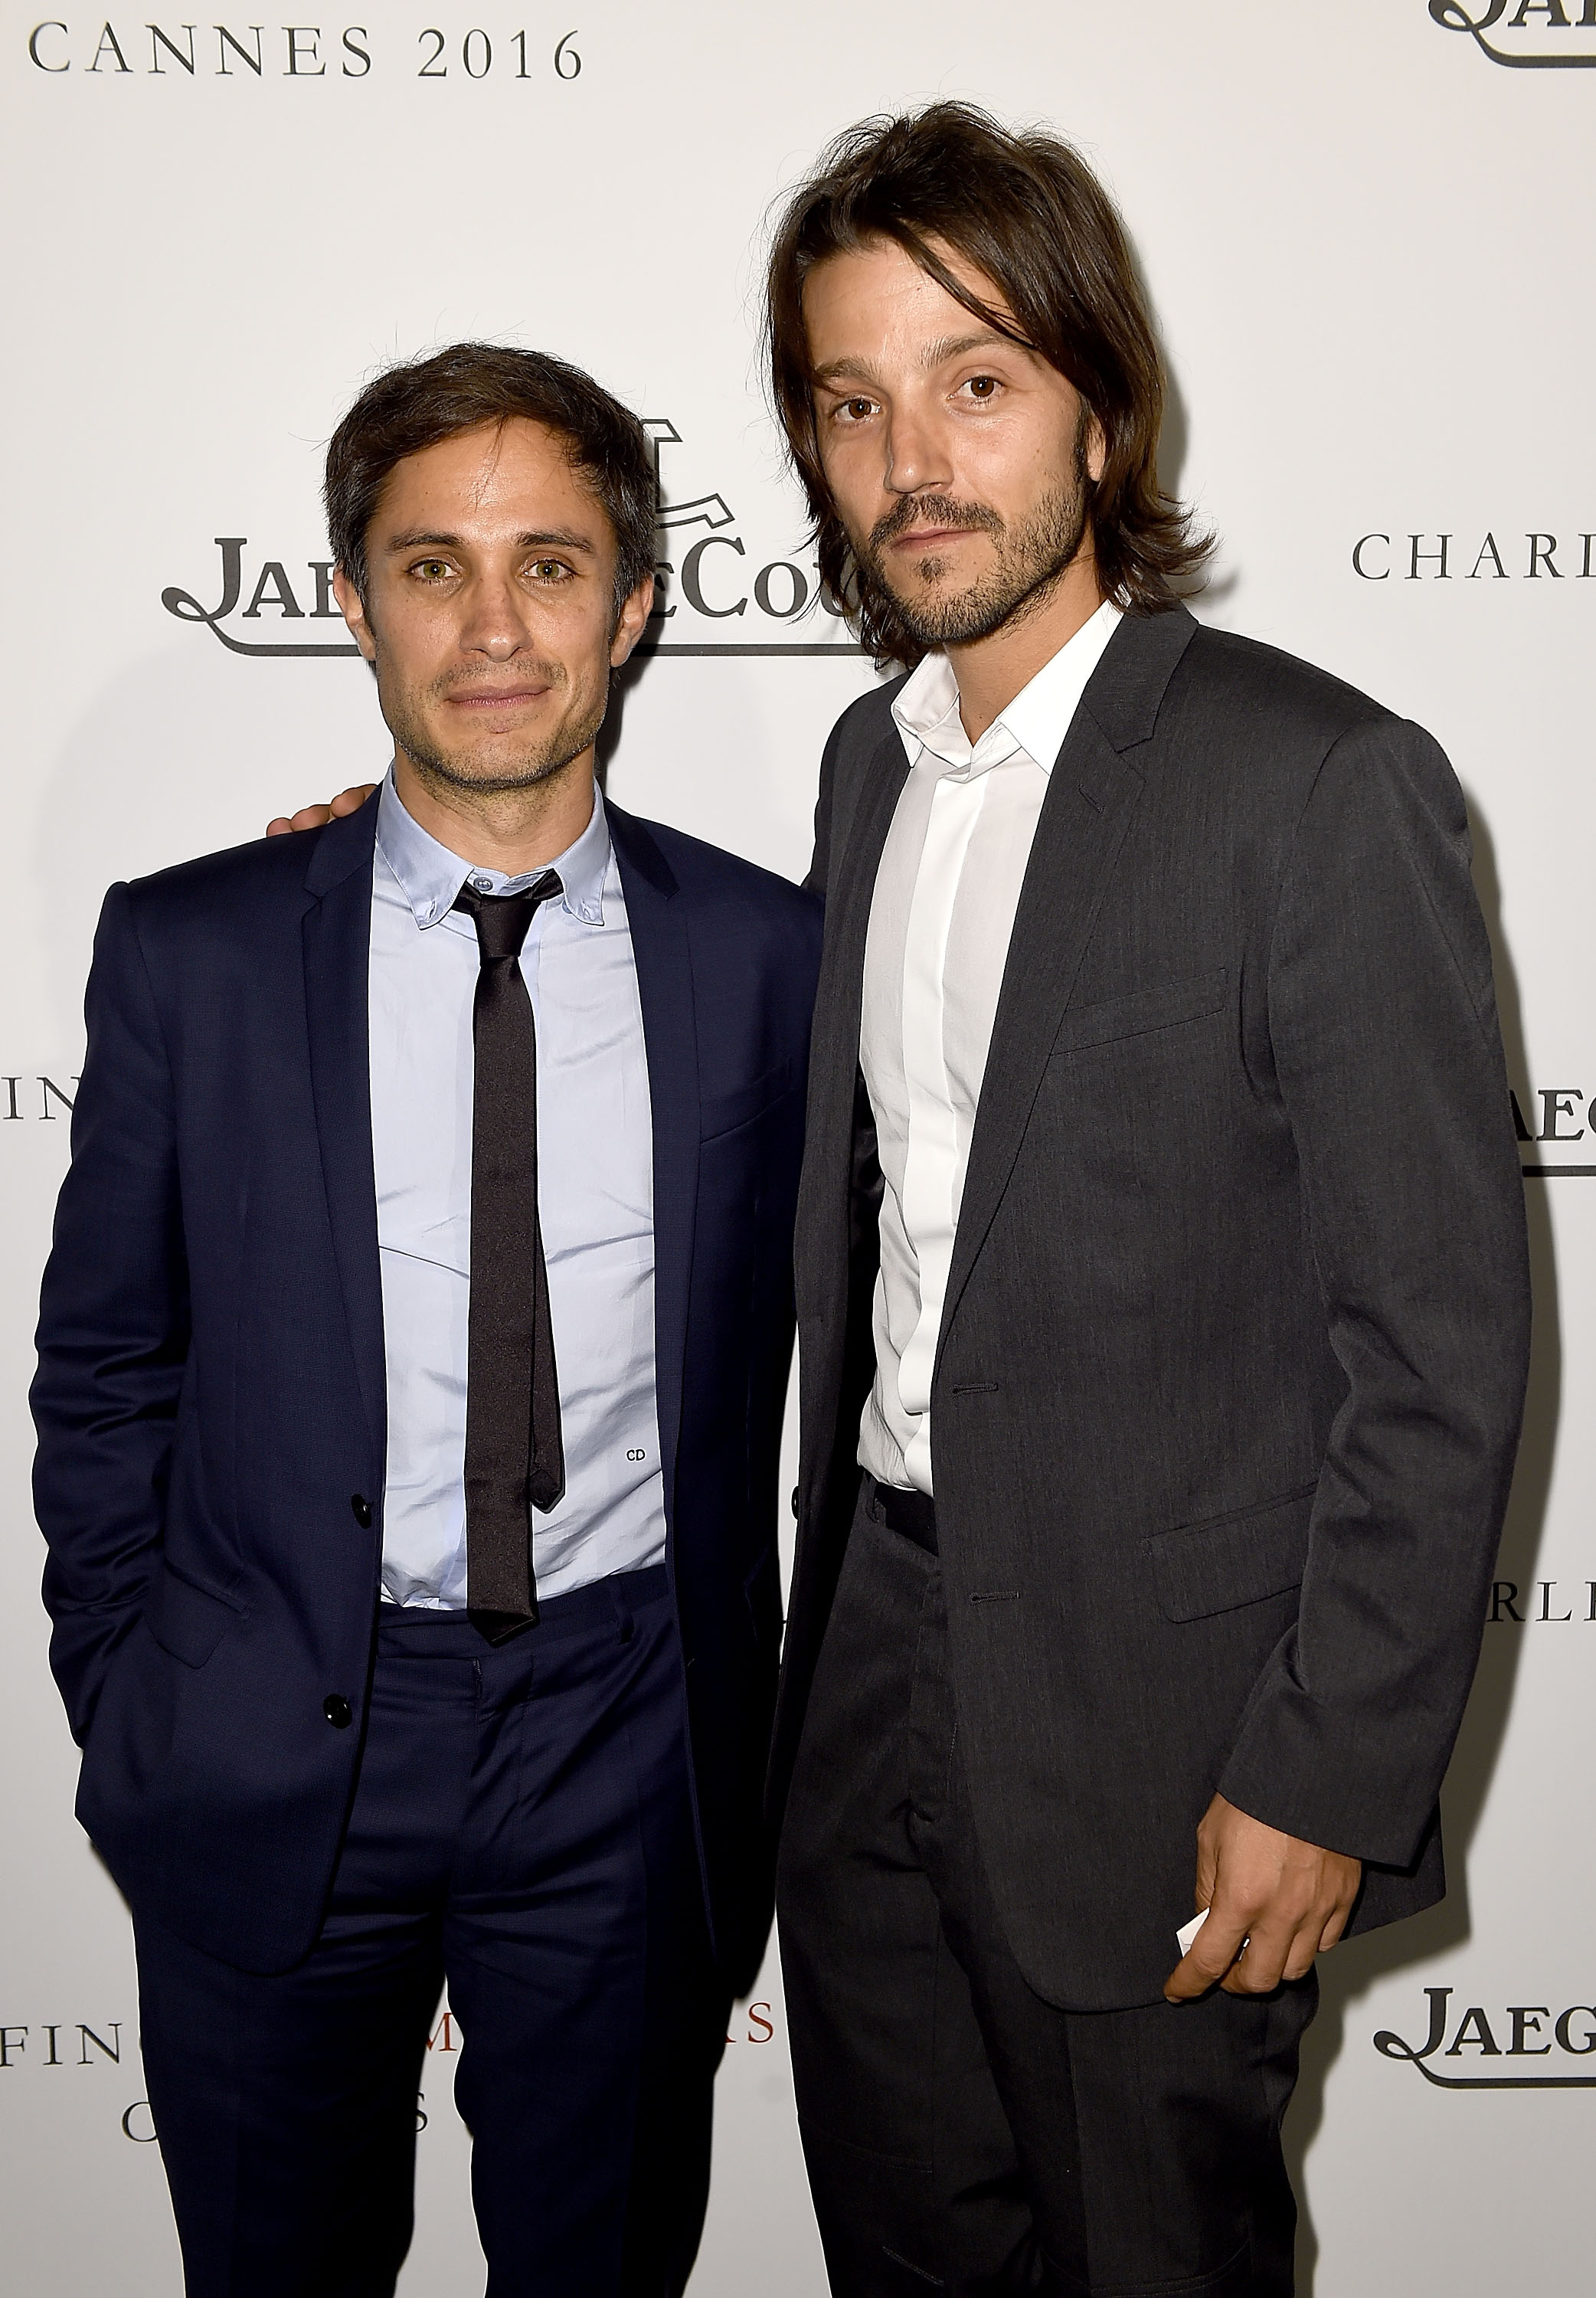 CAP D'ANTIBES, FRANCE - MAY 13: Gael Garcia Bernal and Diego Luna attend as Charles Finch hosts the 8th Annual Filmmakers Dinner with Jaeger-LeCoultre at Hotel du Cap-Eden-Roc on May 13, 2016 in Cap d'Antibes, France. (Photo by Ian Gavan/Getty Images for Jaeger-LeCoultre)